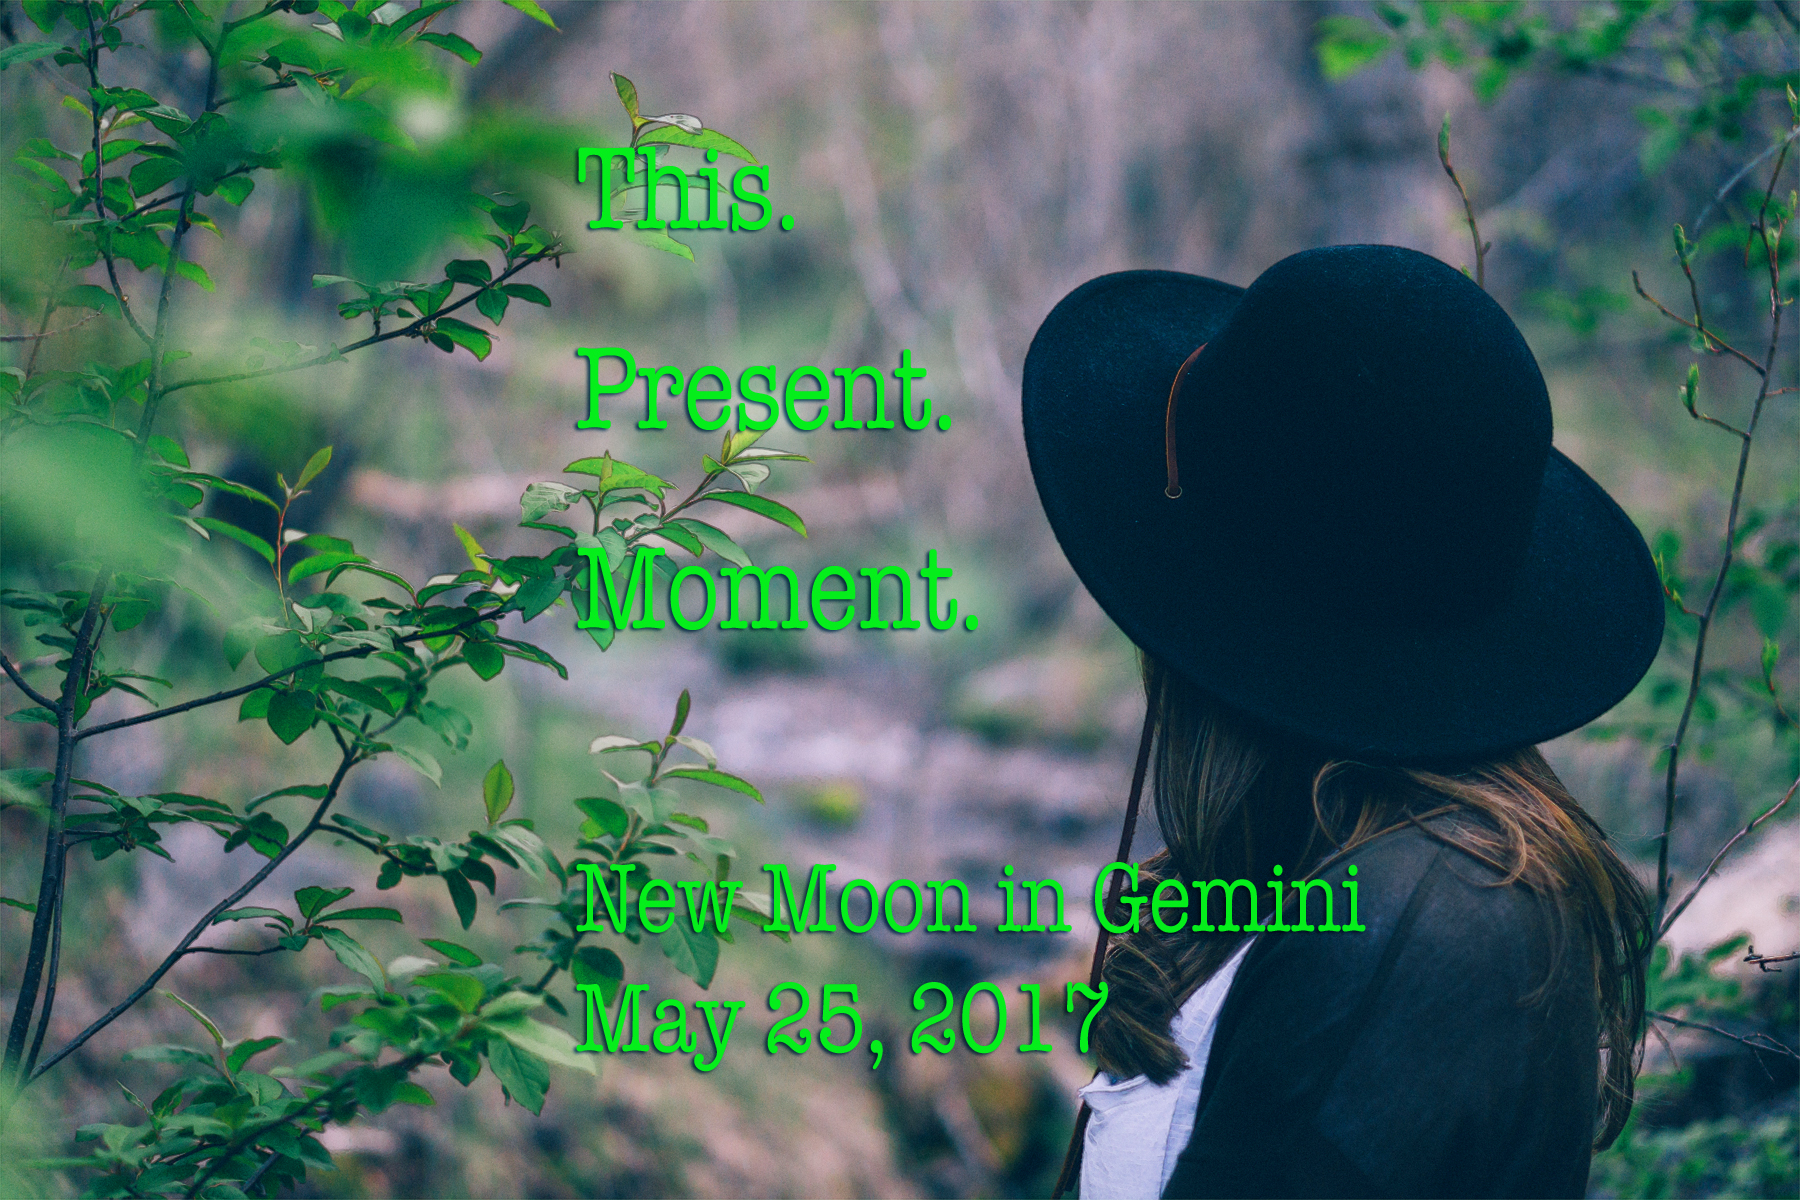 New Moon in Gemini: This. Present. Moment.